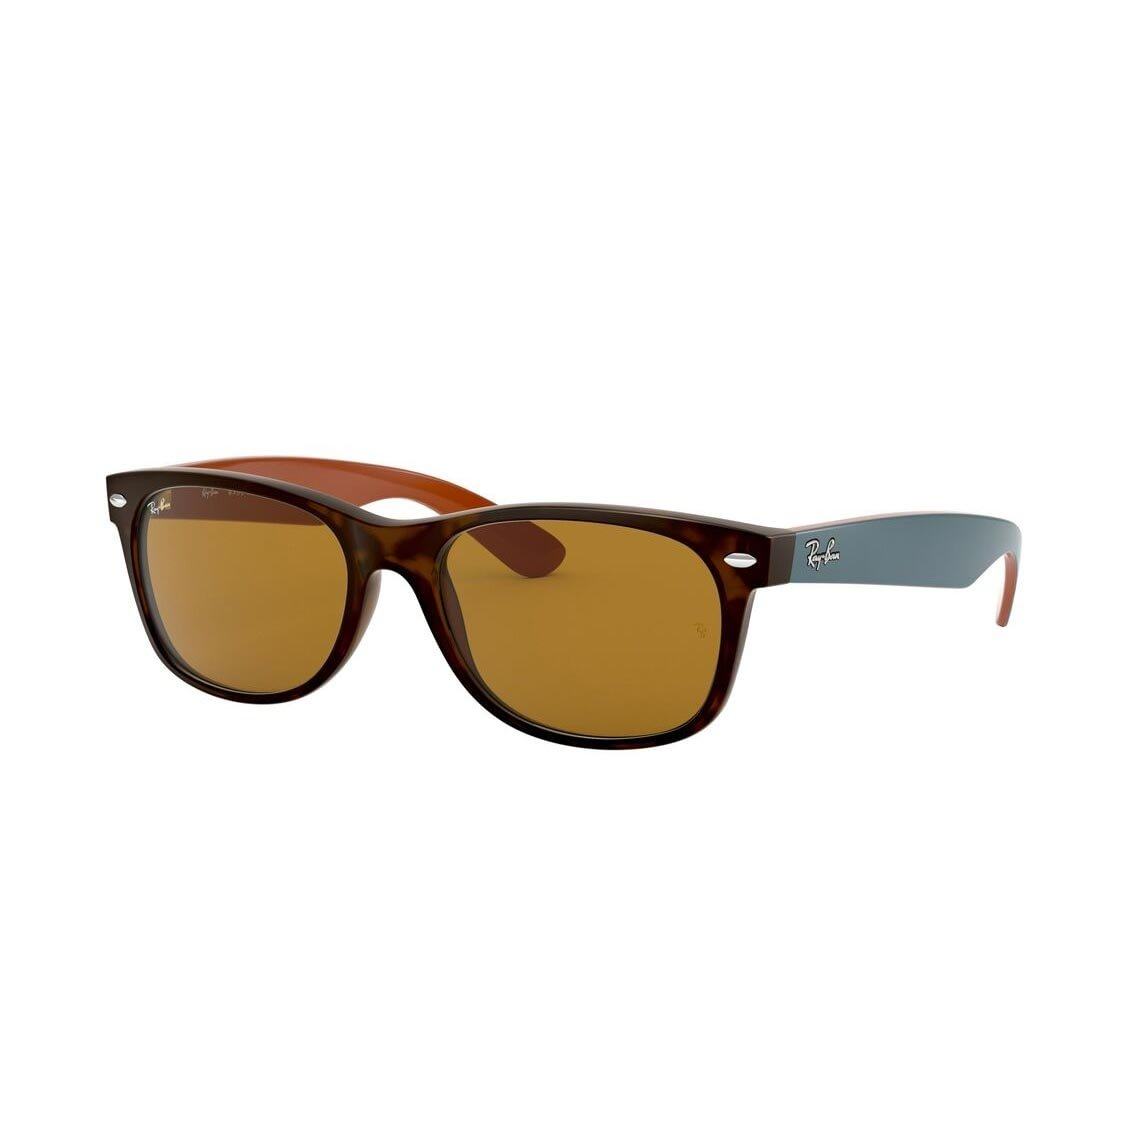 Ray-Ban New Wayfarer RB2132 6179 52